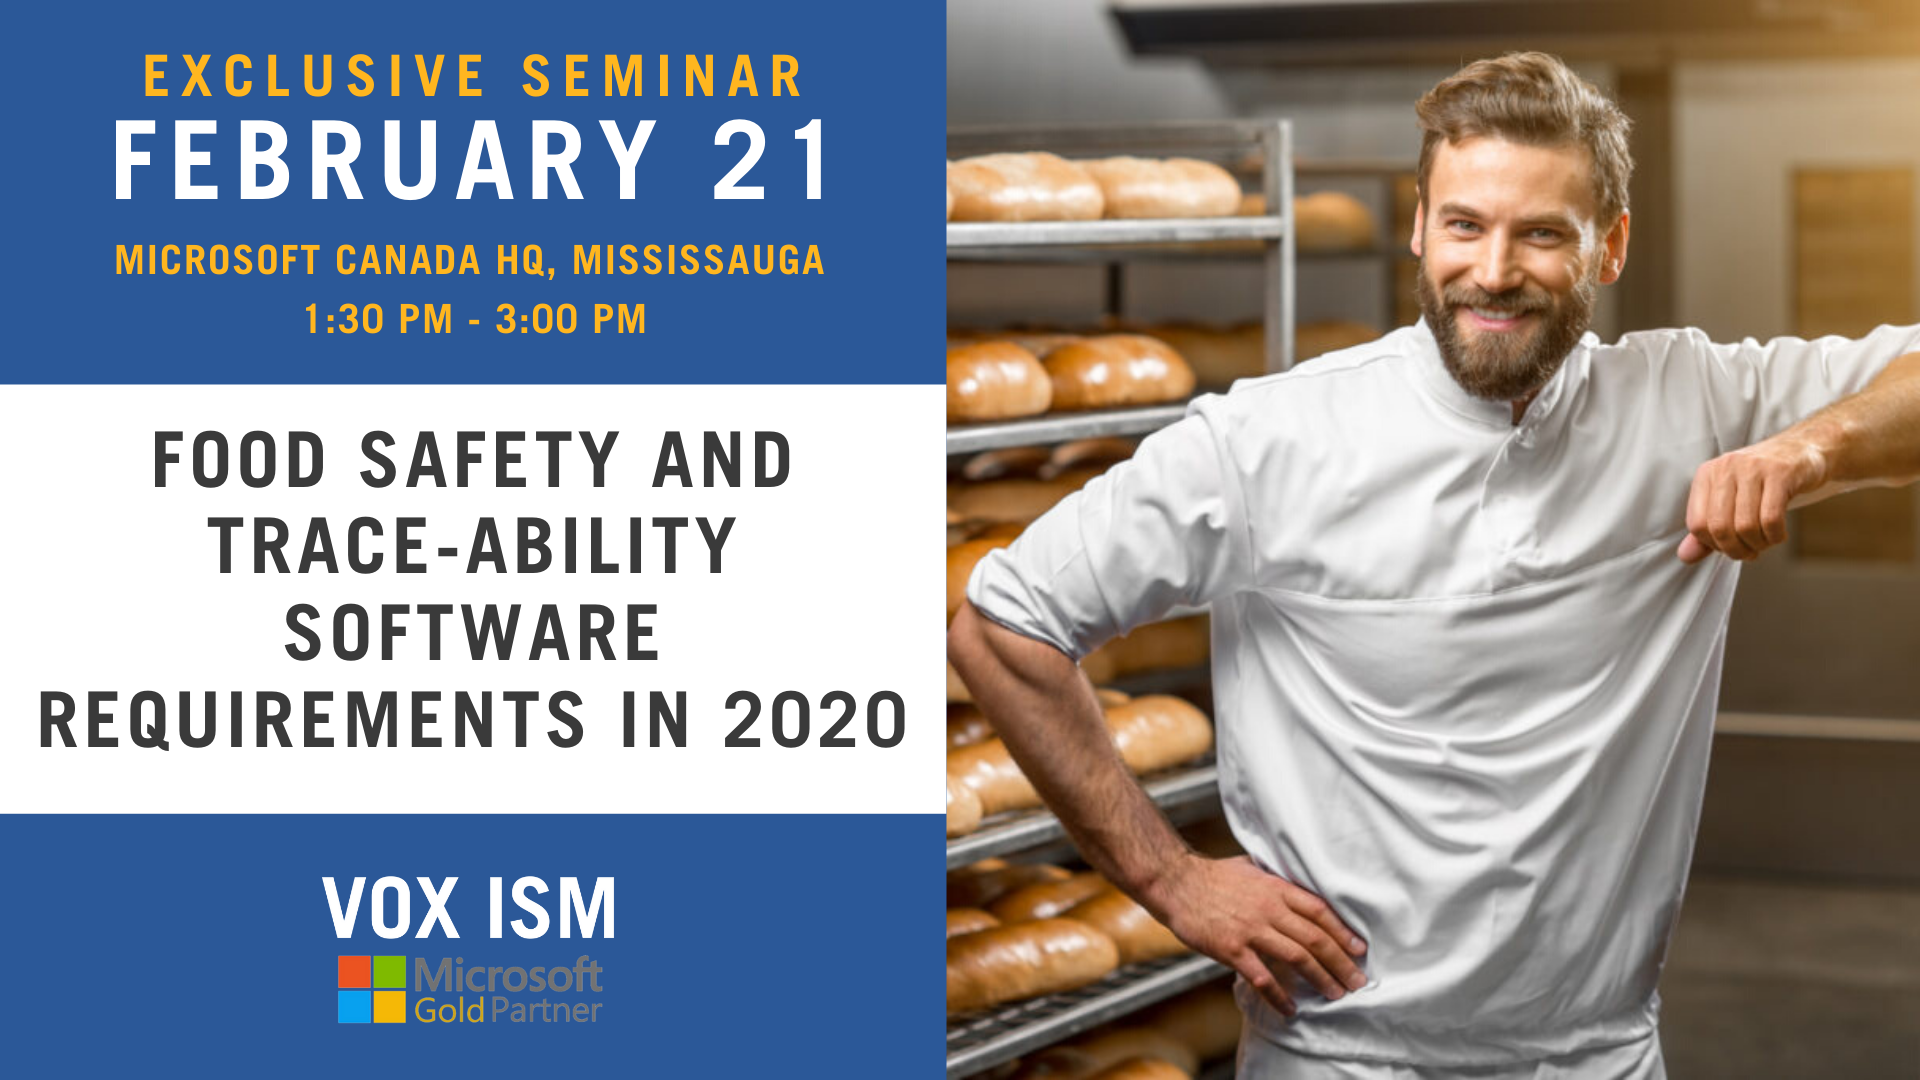 Food Safety and Trace-ability Software Requirements in 2020_Feb 21_VOX ISM